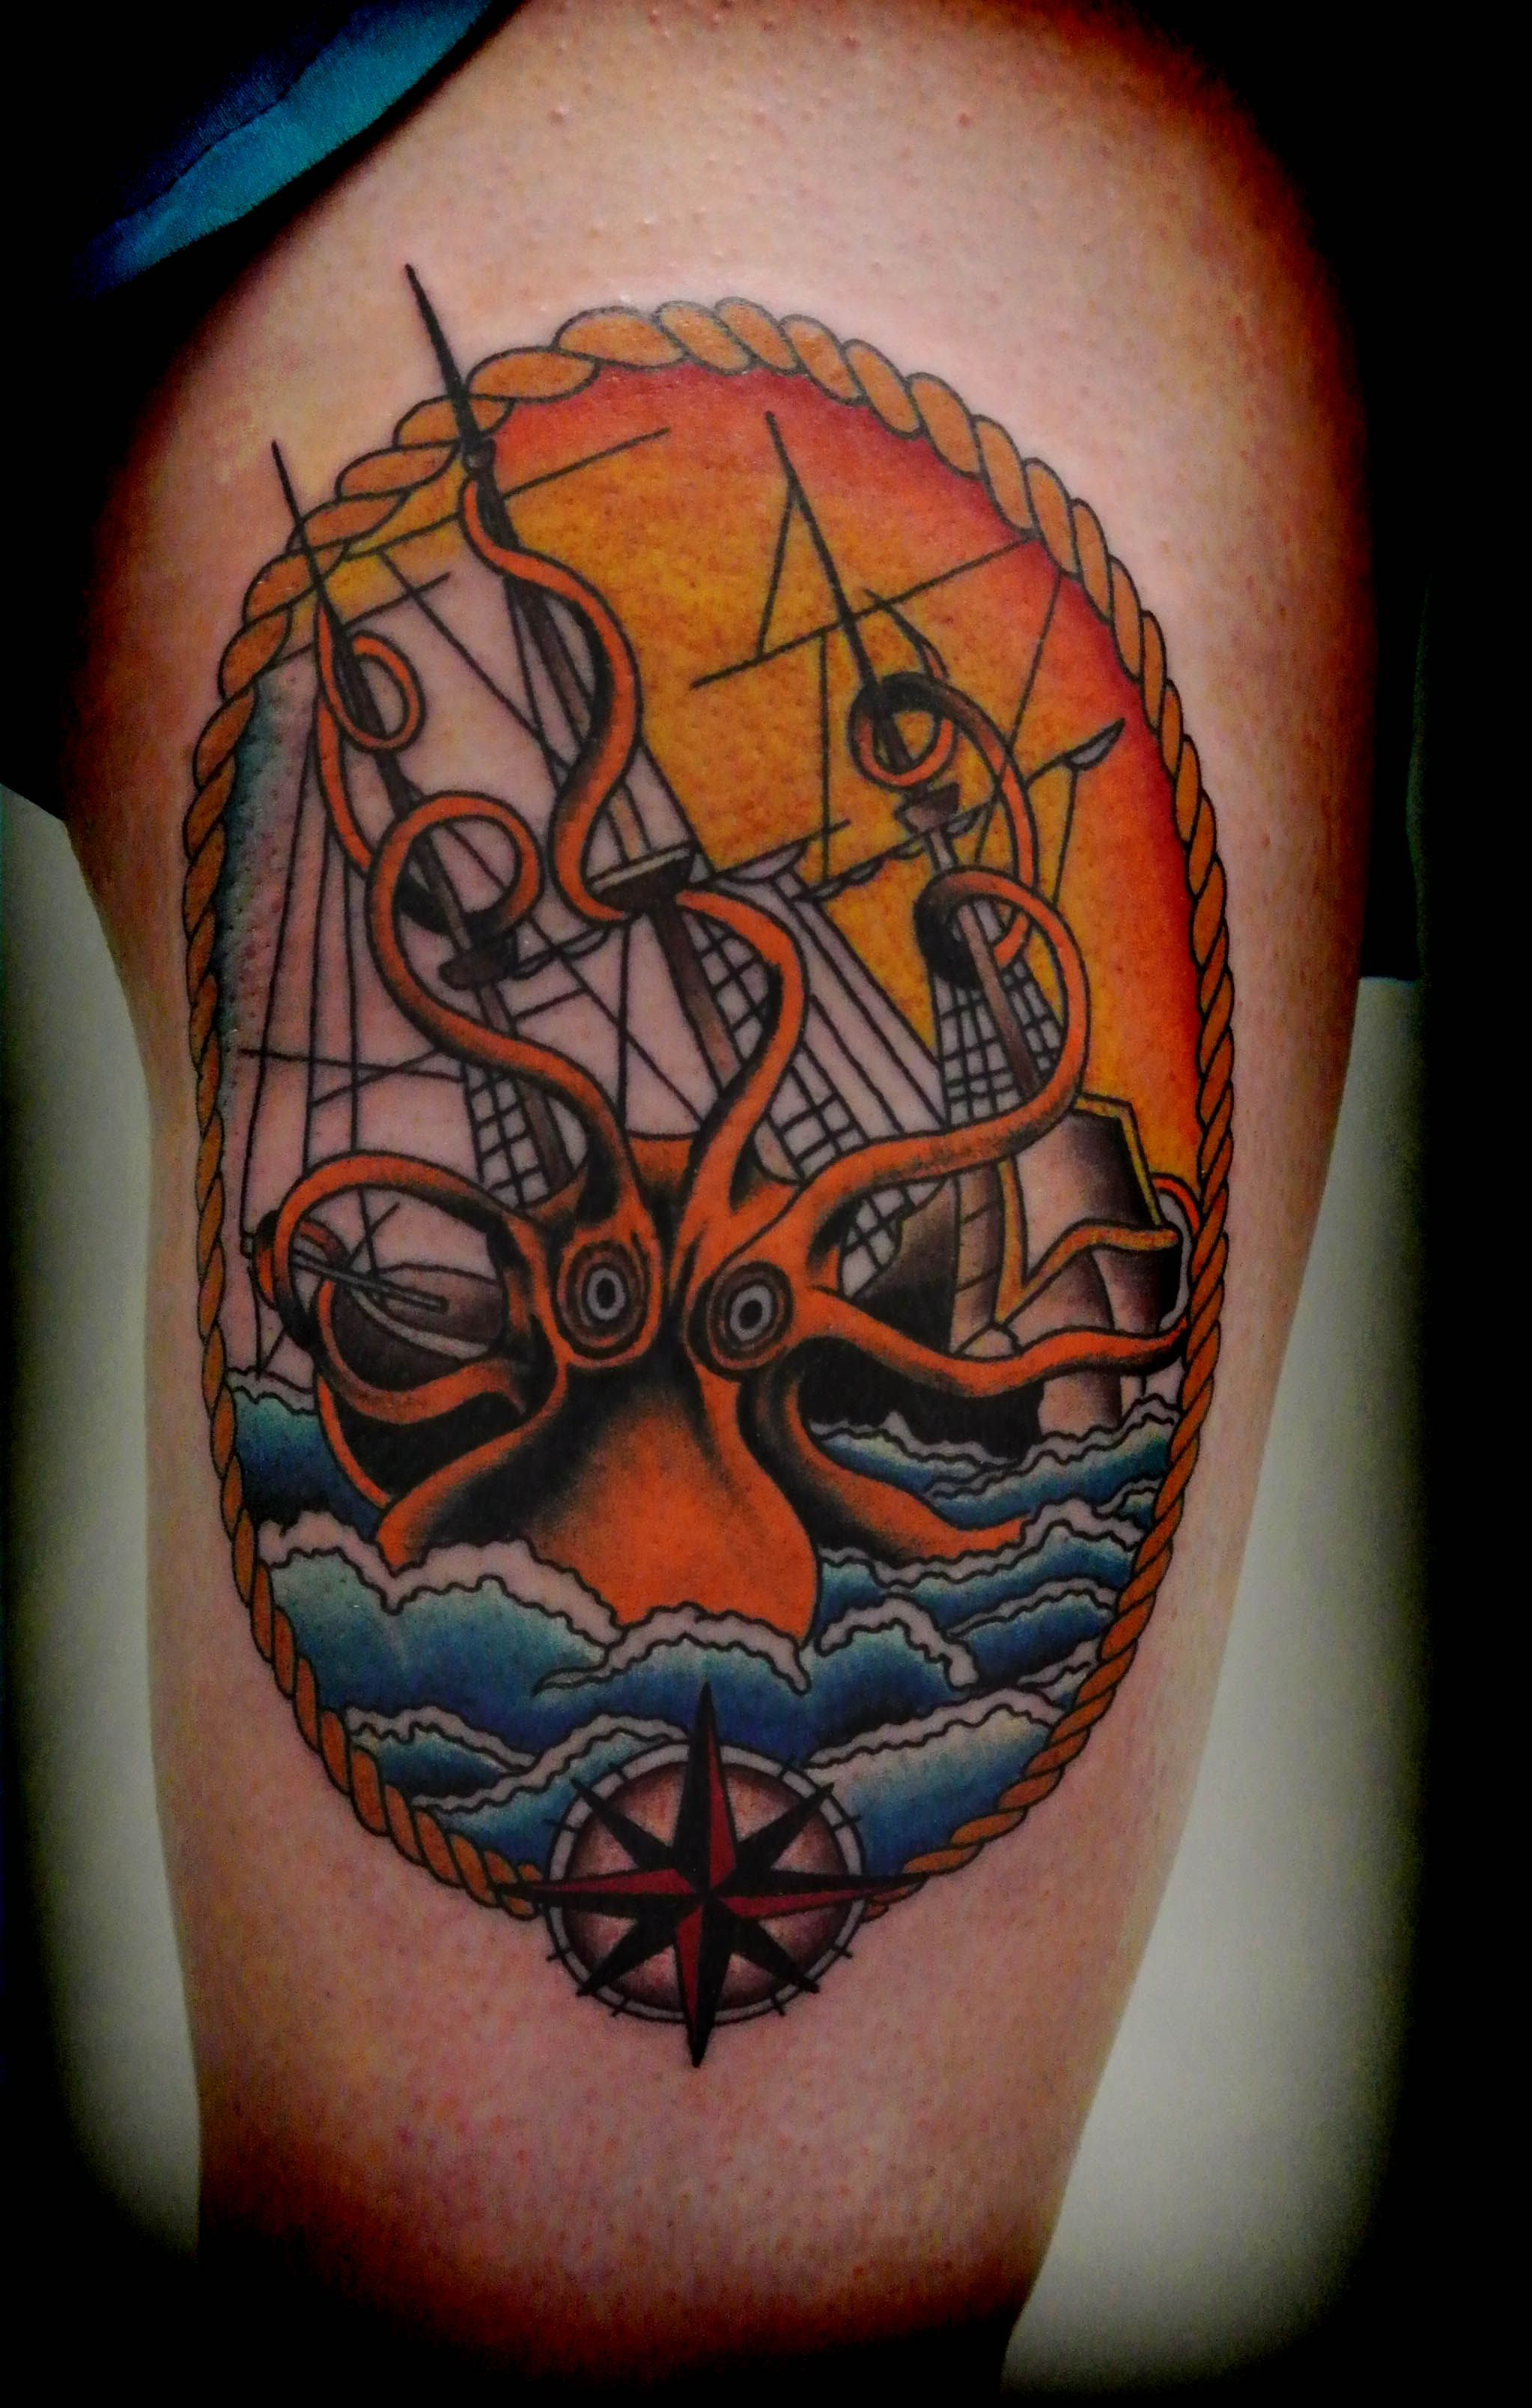 Tattoo By Lou Shaw Of Four Aces Tattoo In Aldinga Beach South Australia Thigh Piece With A Kraken Taking Down A S Ace Tattoo Traditional Tattoo Kraken Tattoo